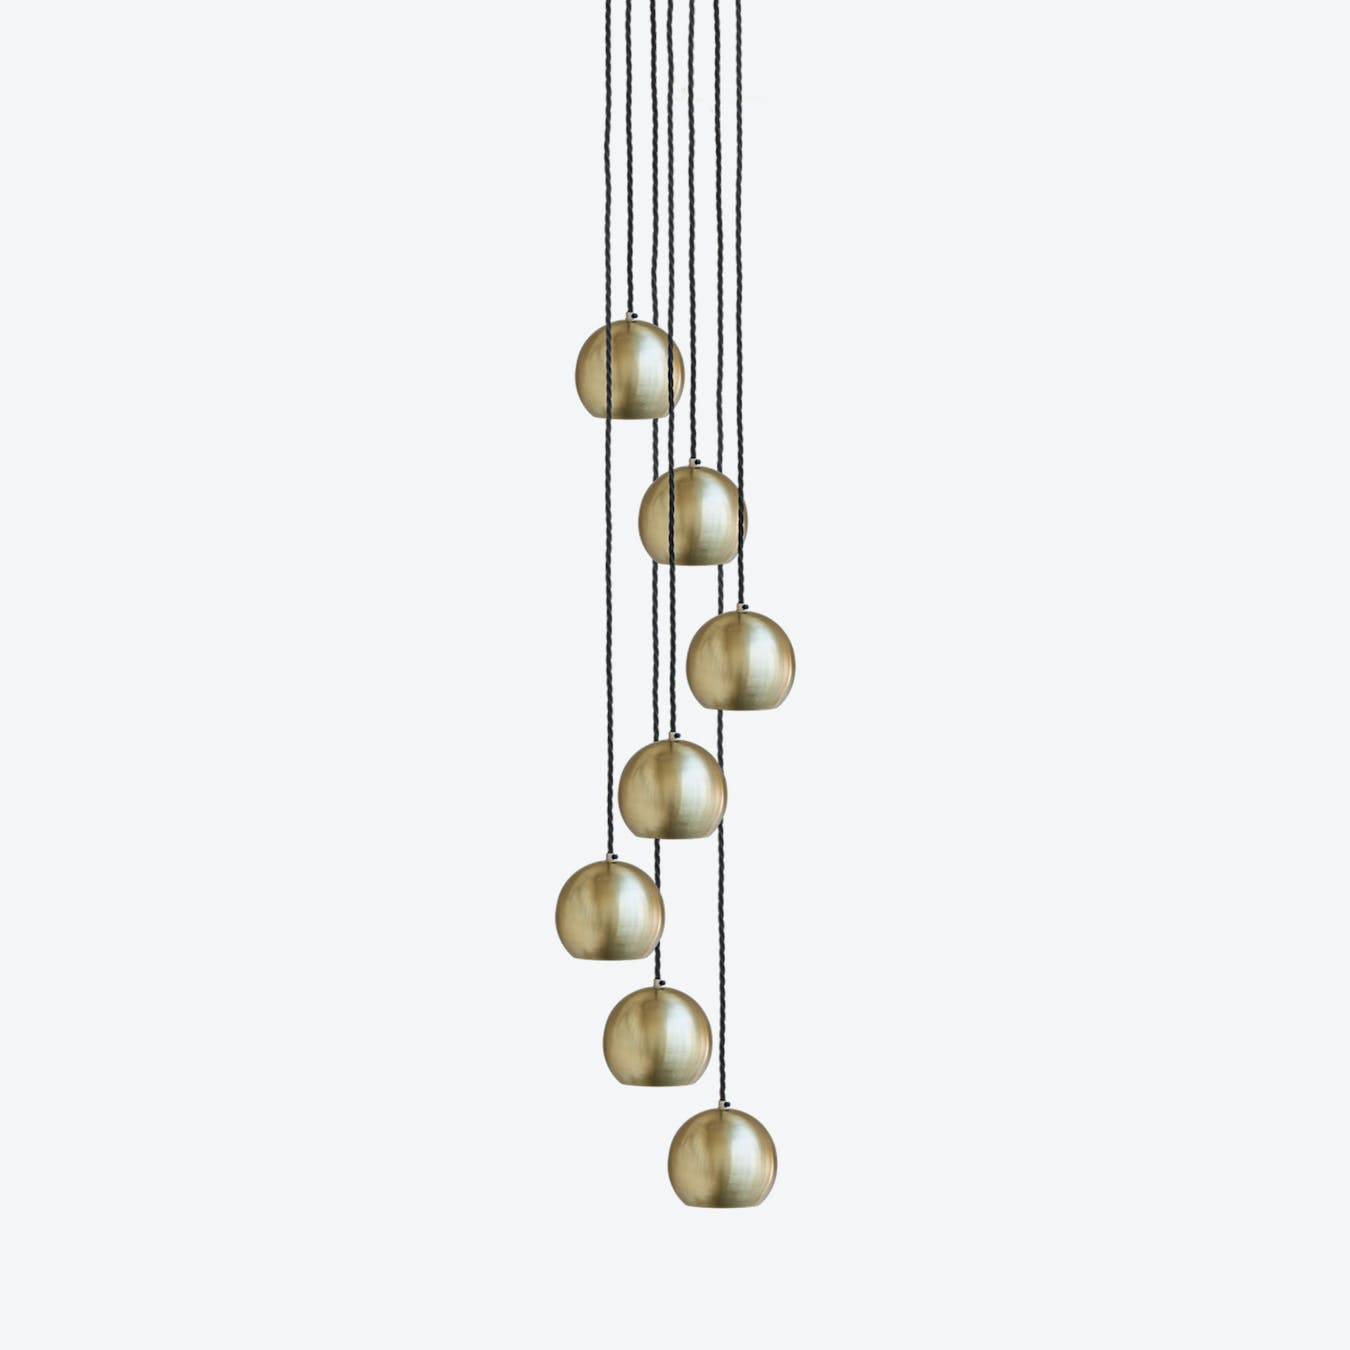 cinco 2 pendant light - white w   imitation gold leaves by bulb attack